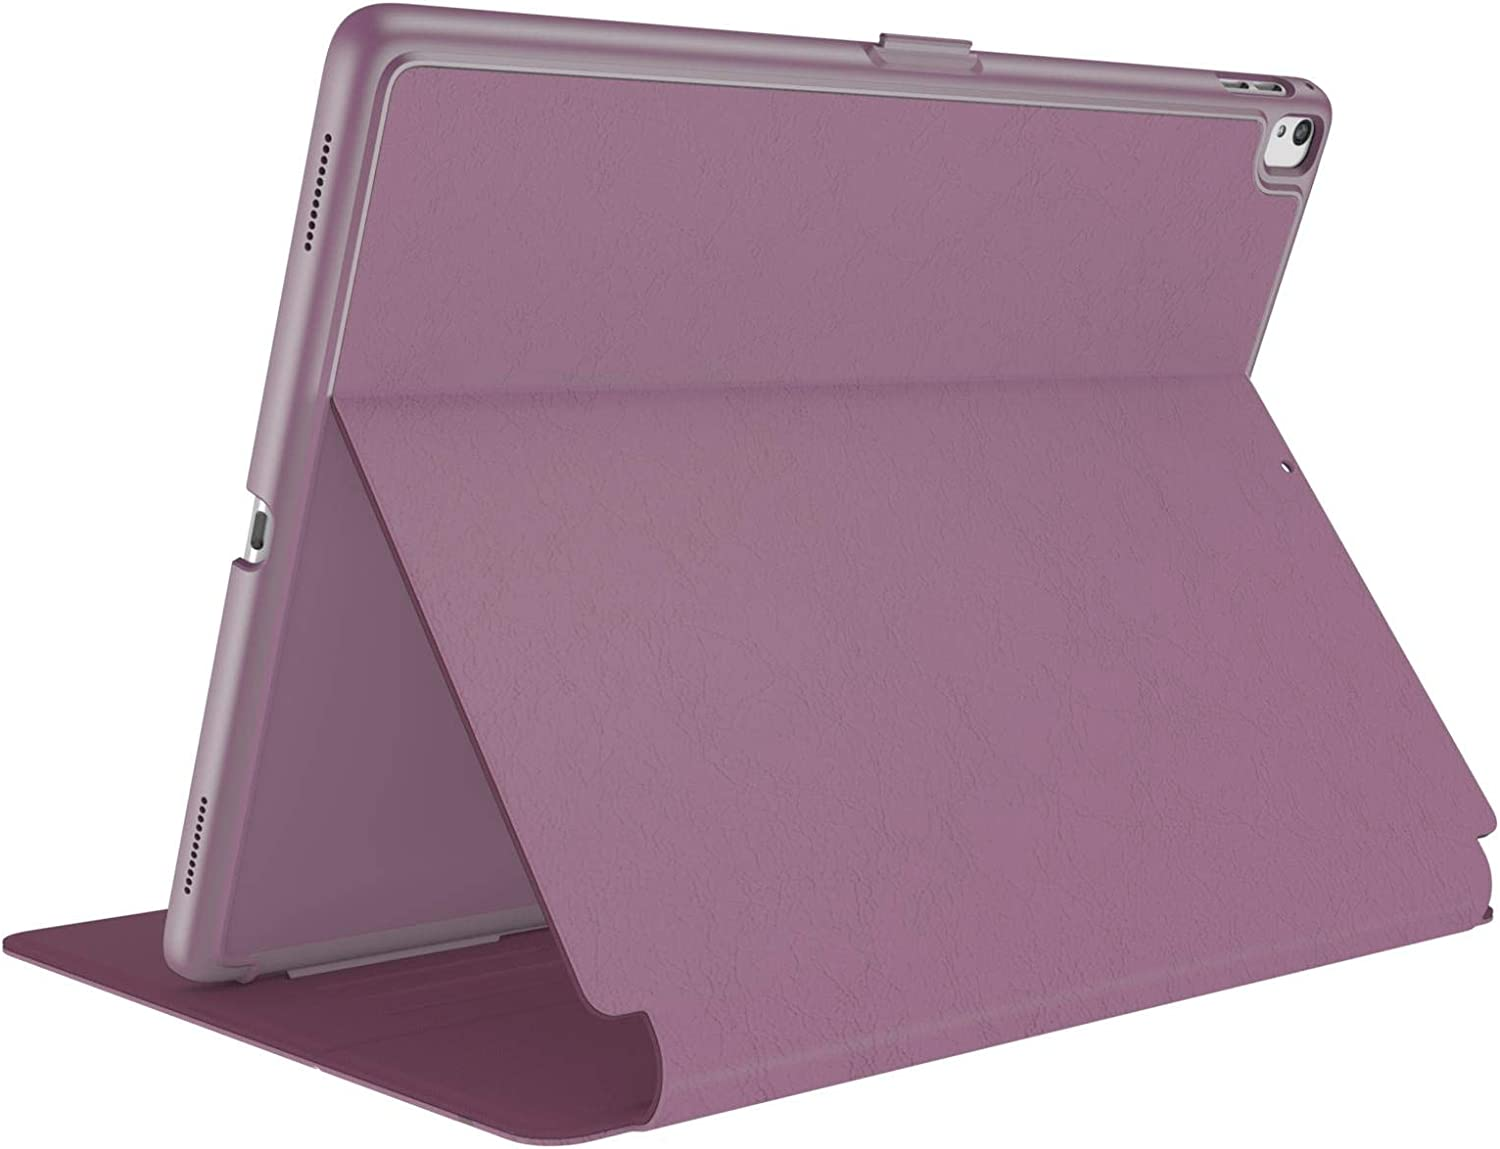 """Speck Products BalanceFolio iPad 9.7-inch Case (2017/2018, Also fits 9.7"""" iPad Pro/Air 2/Air), Plumberry Purple/Crushed Purple/Crepe Pink (121931-7265)"""